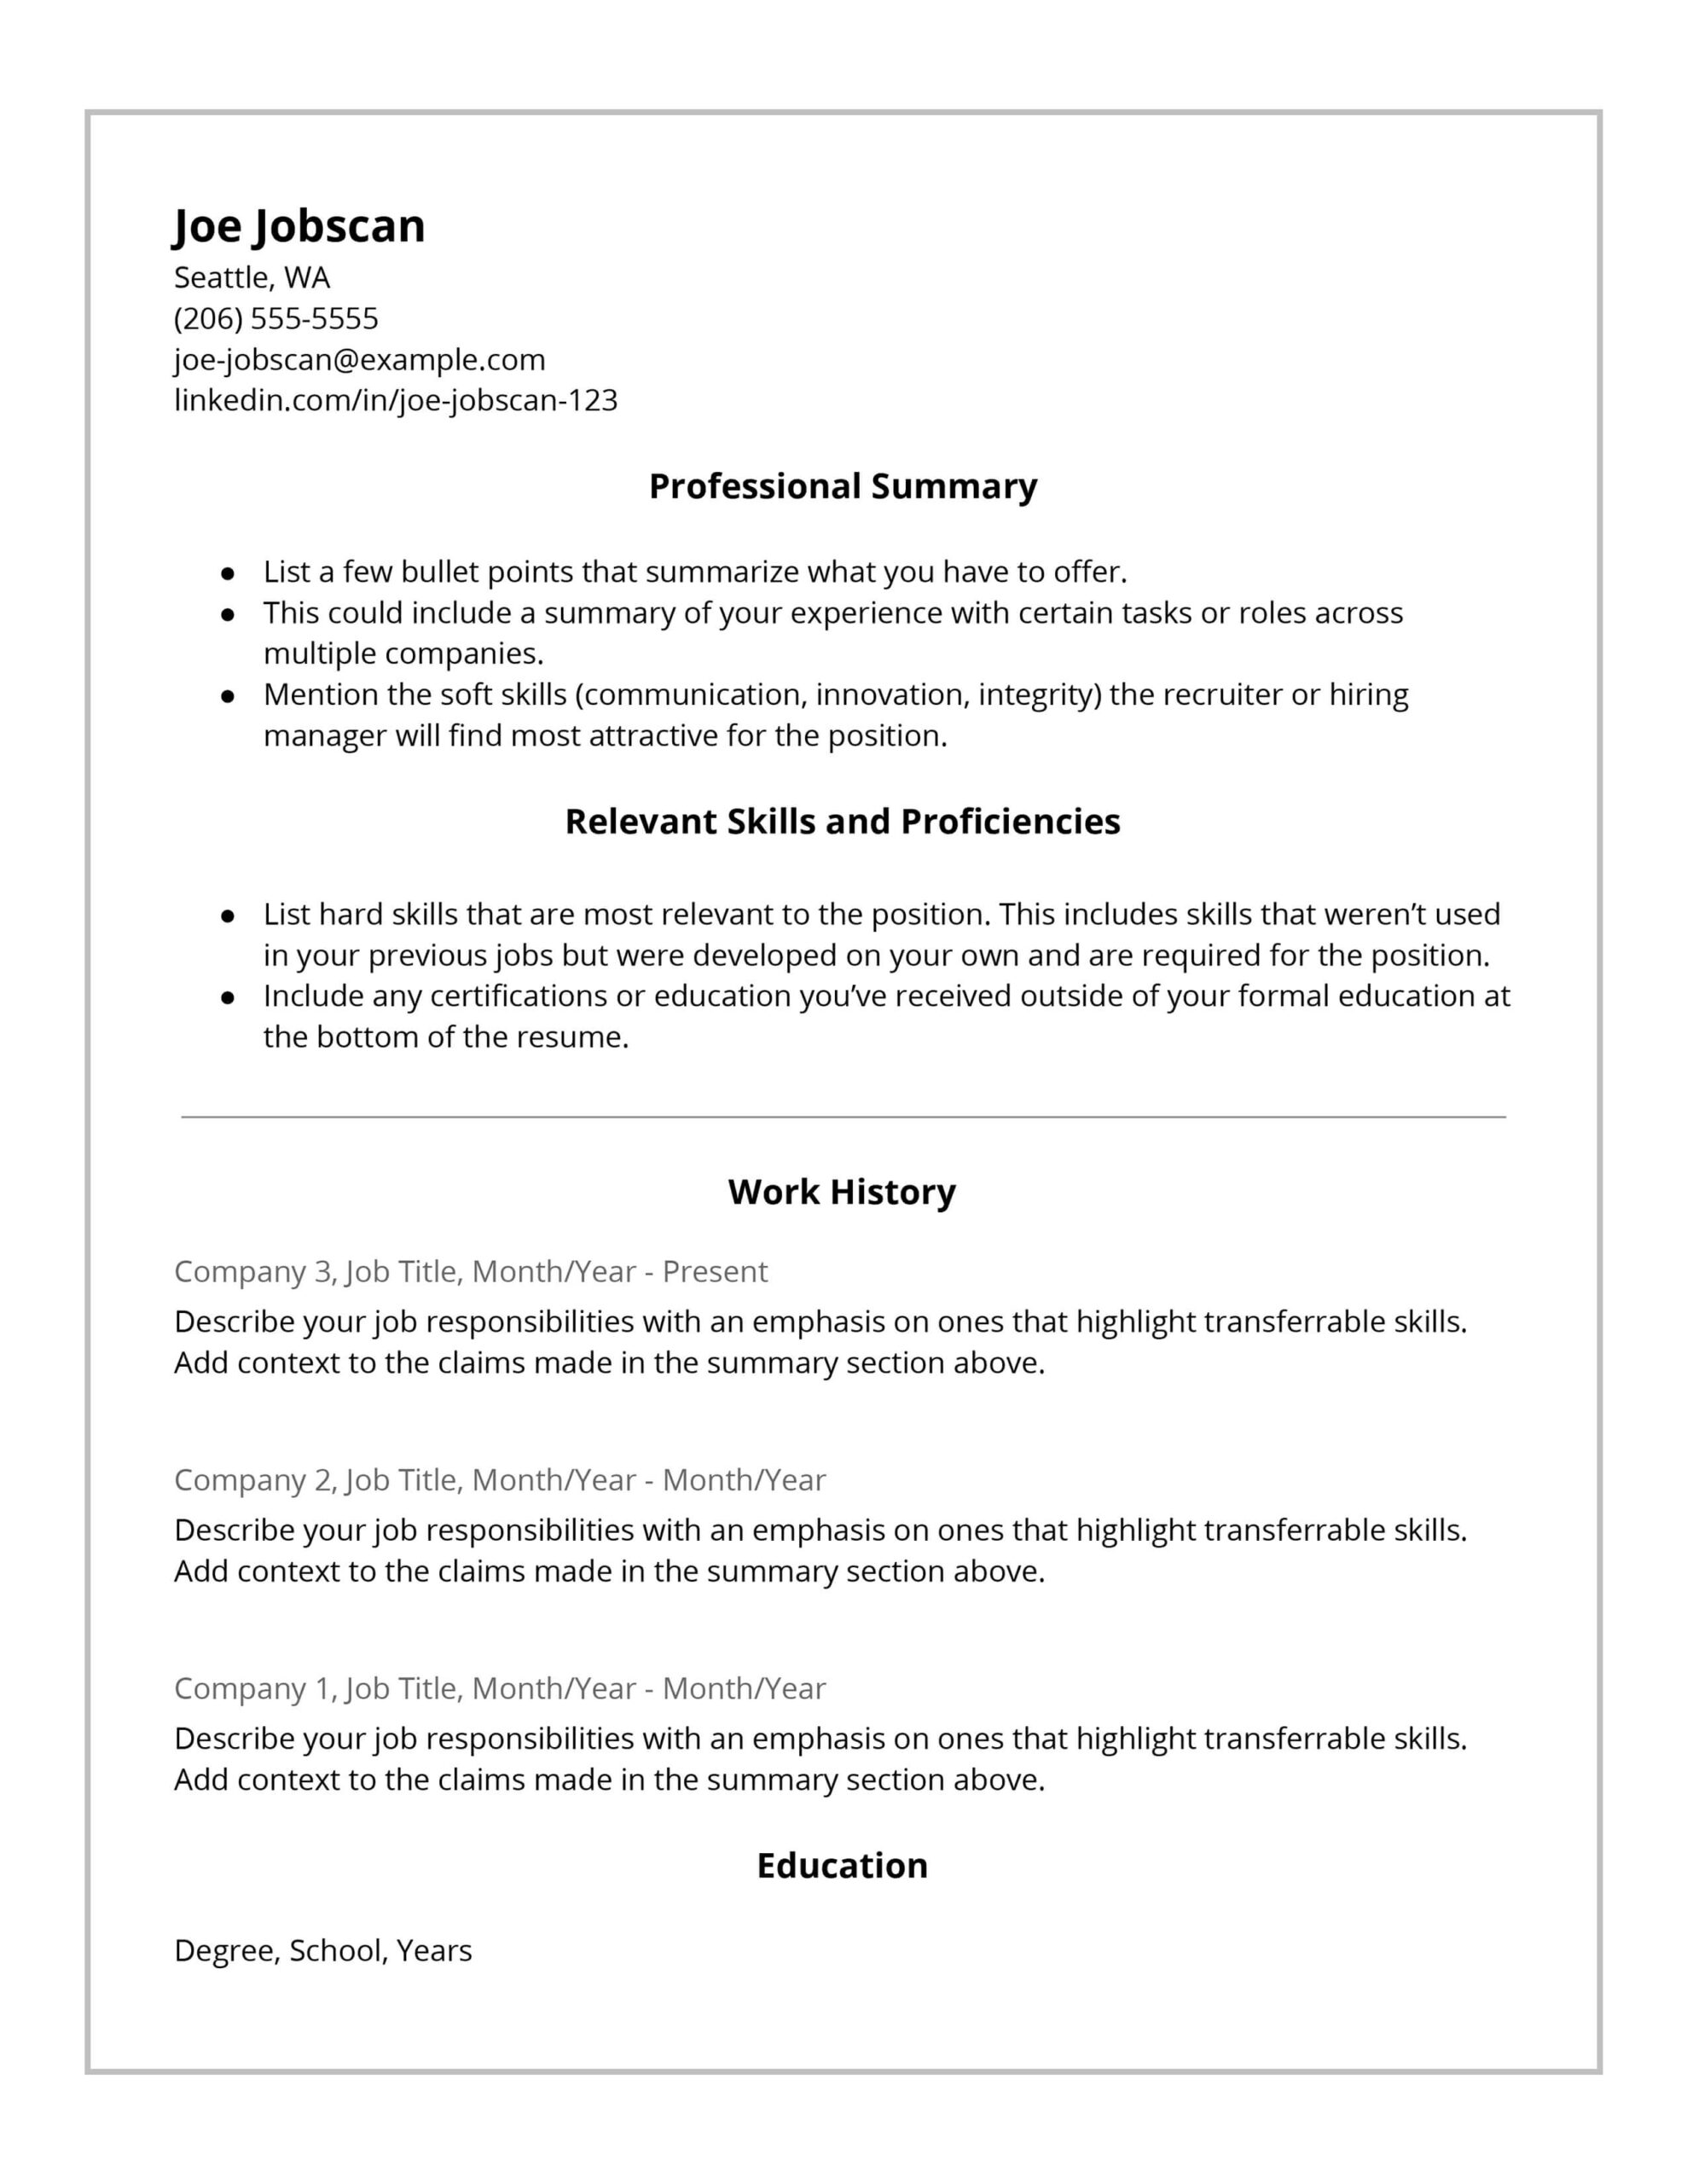 recruiters hate the functional resume format here best hybrid template good technical Resume Best Functional Resume Format